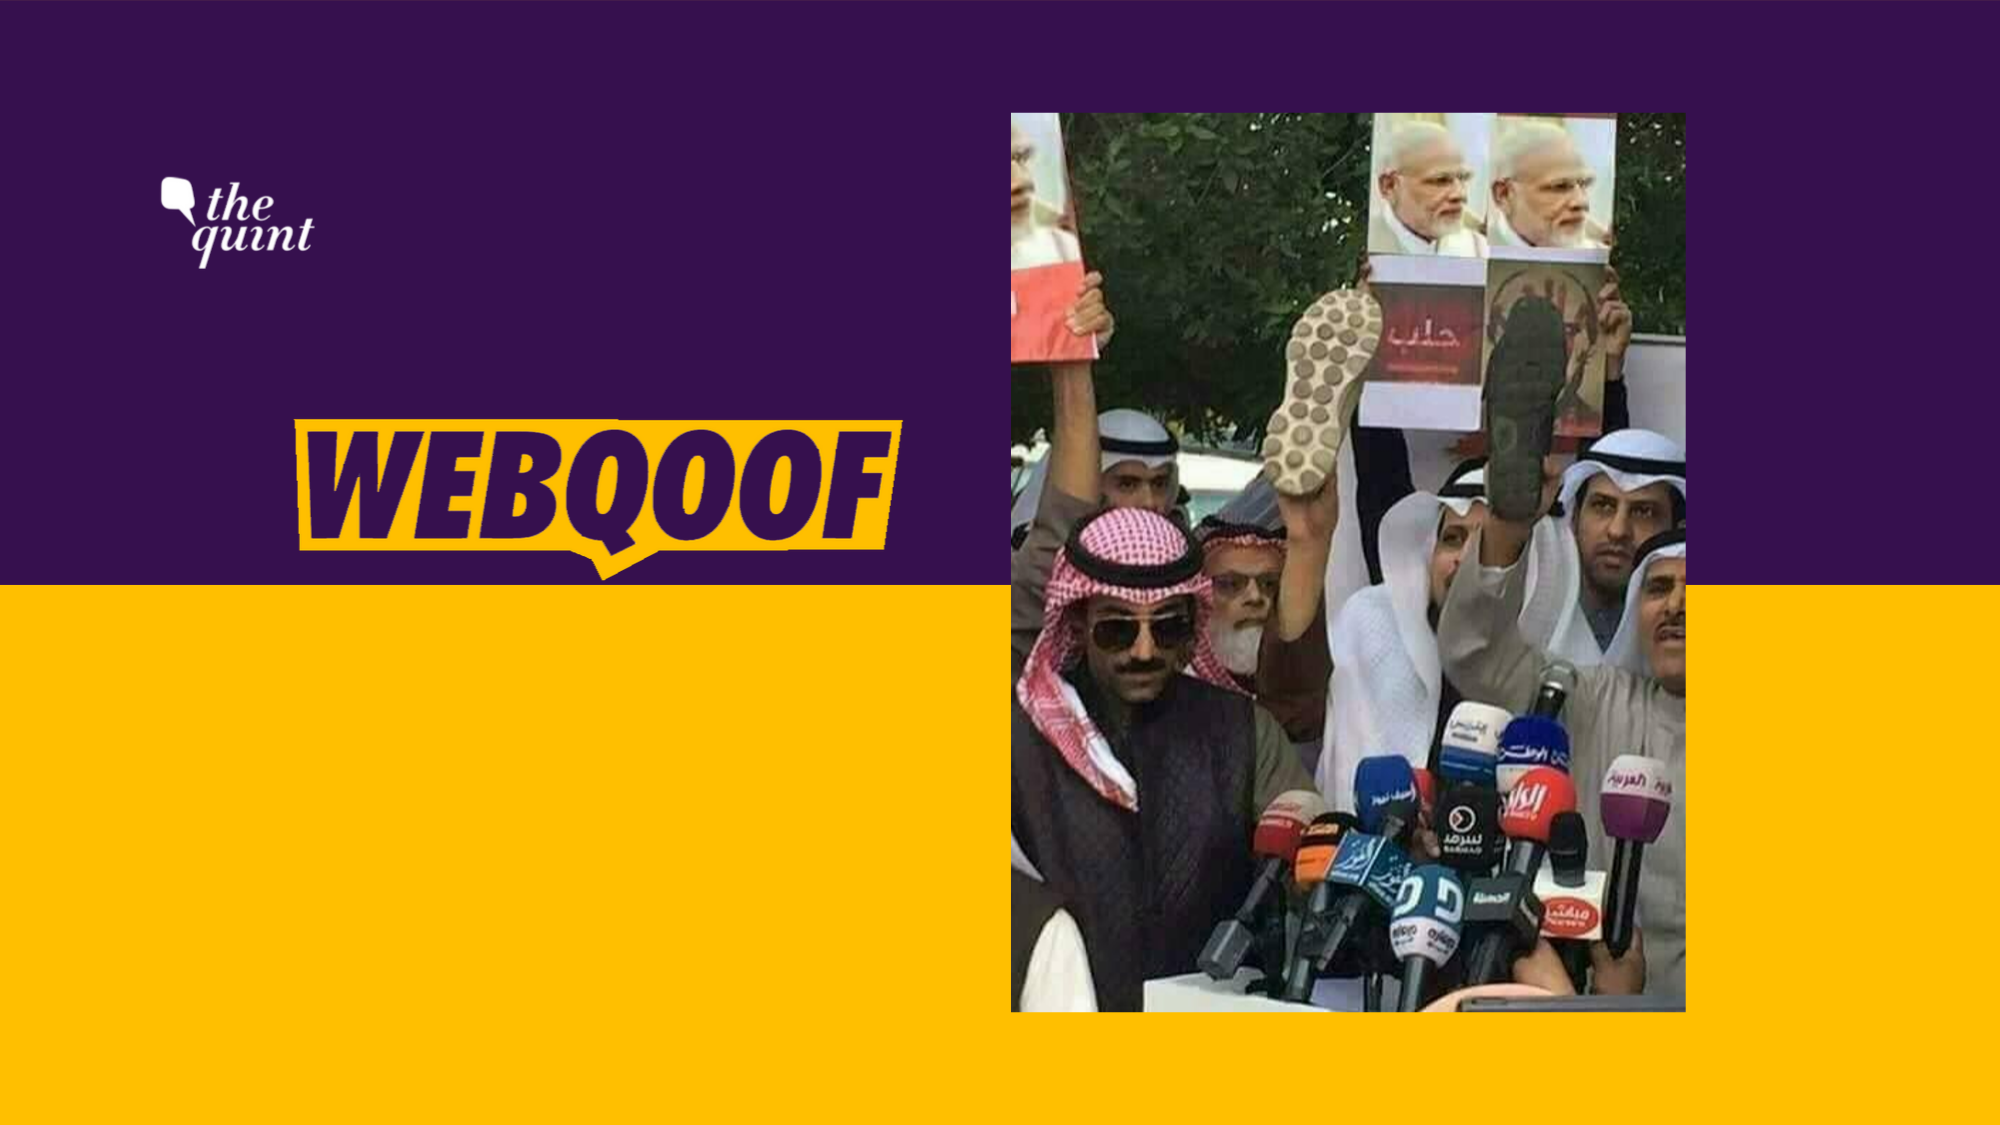 Protest in Kuwait Against Putin Shared as Anti-Modi Demonstration